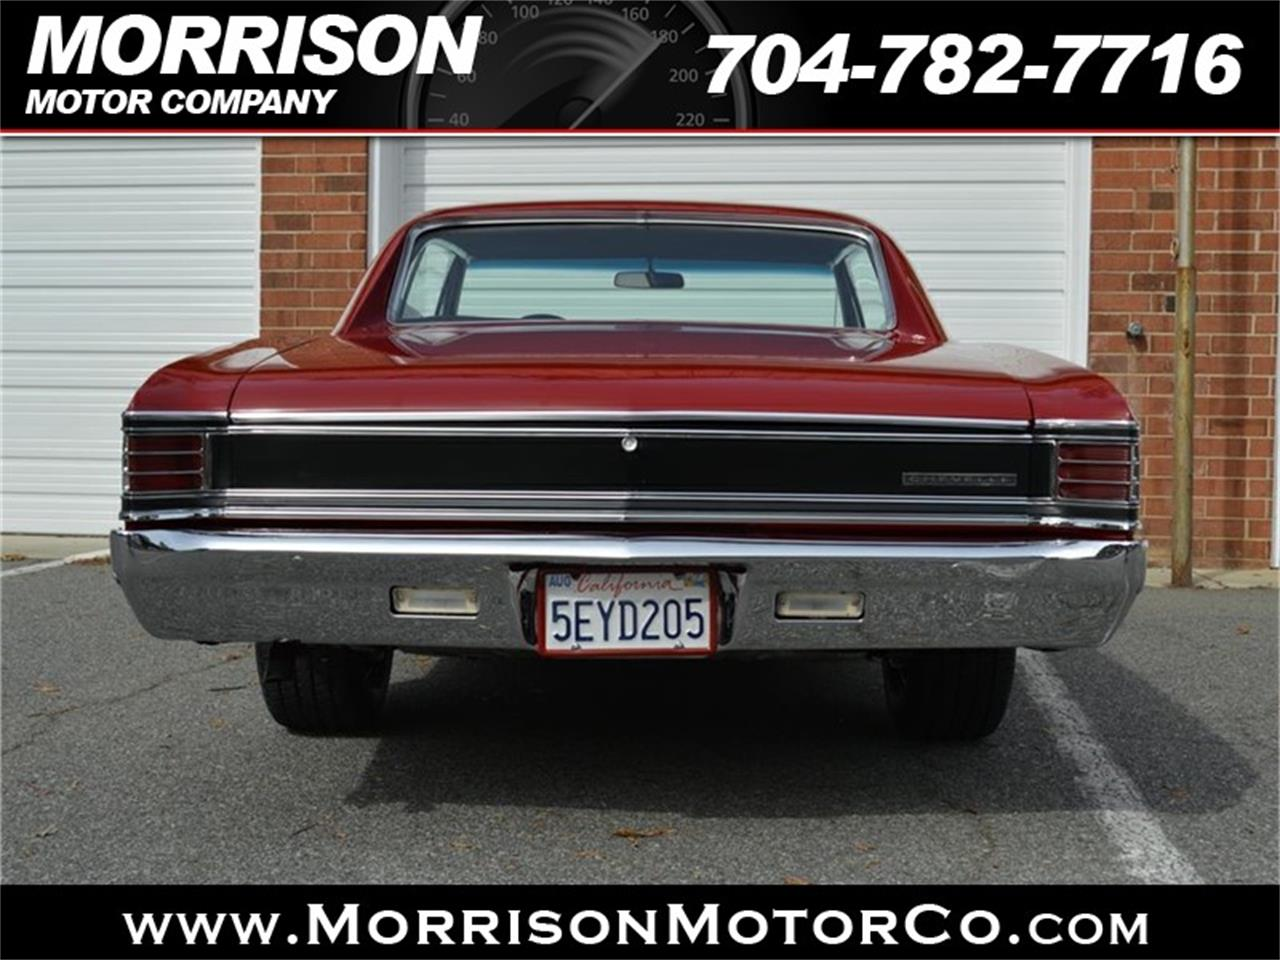 Large Picture of '67 Chevelle Malibu Offered by Morrison Motor Company - P626